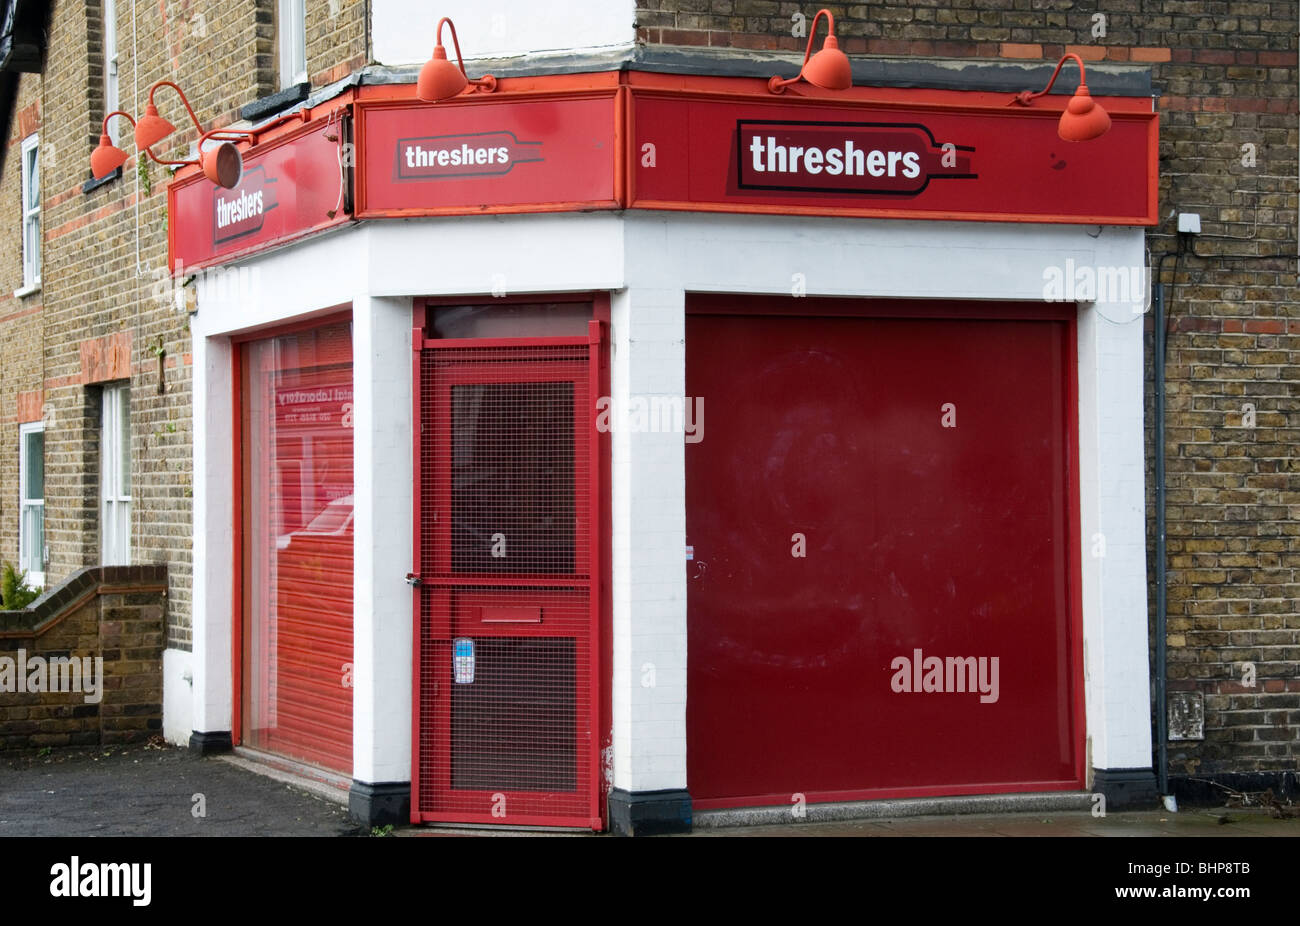 Closed Threshers off-licence, Shortlands, South London - Stock Image